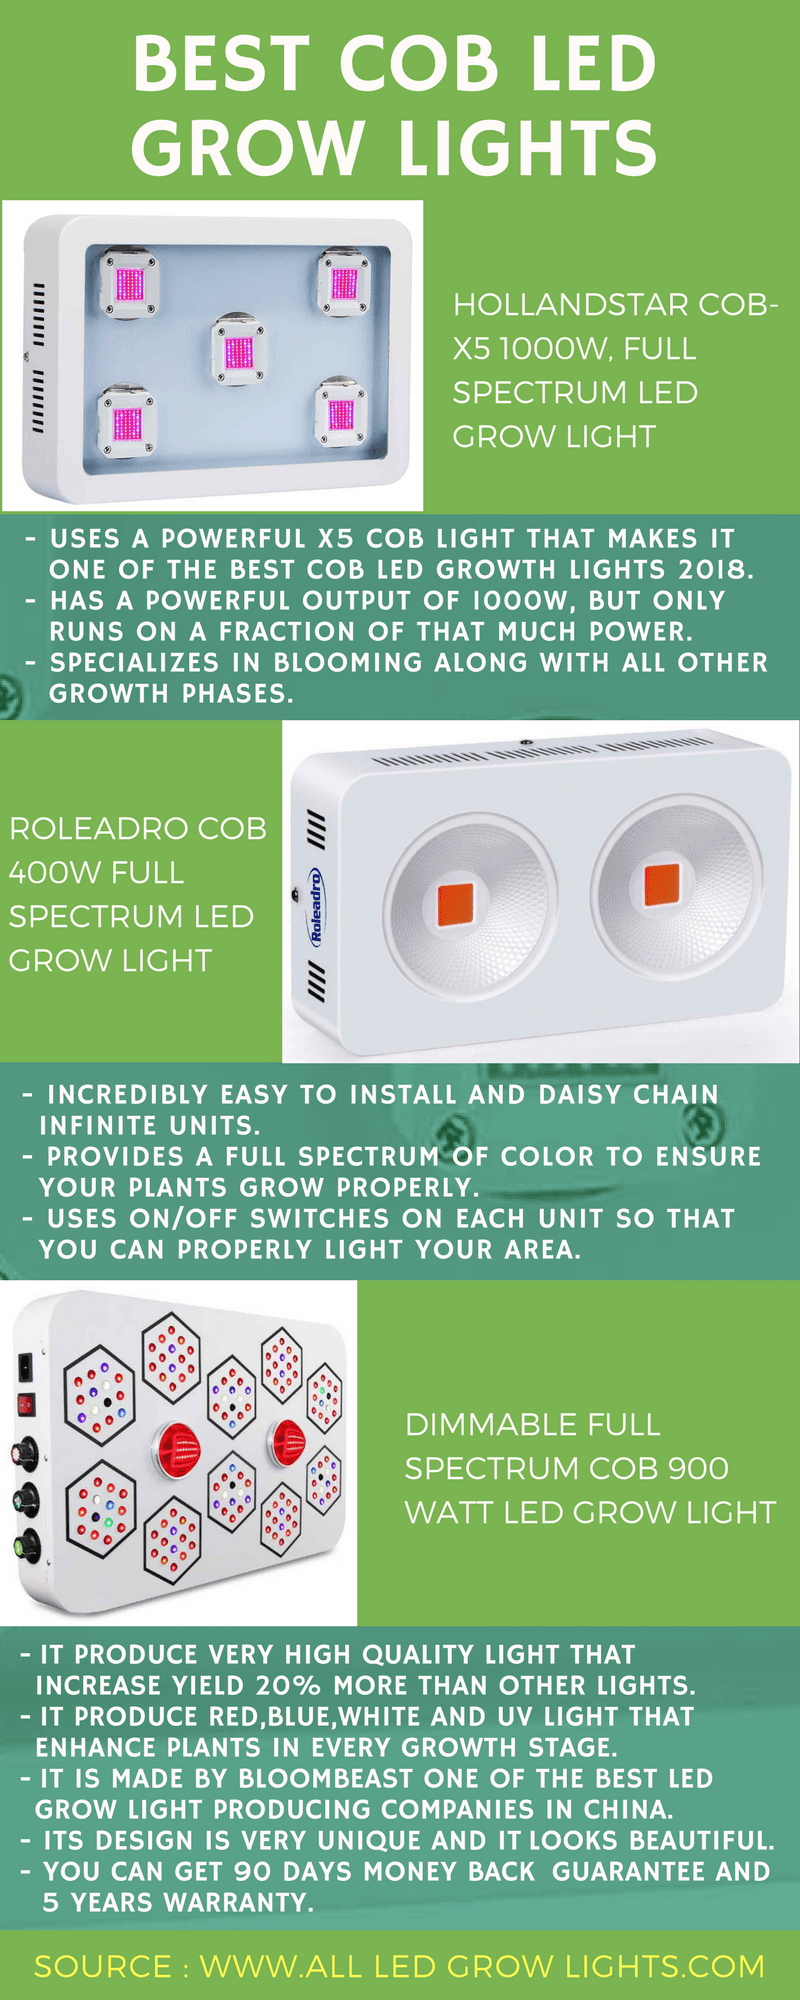 Best COB LED Grow Light infographic